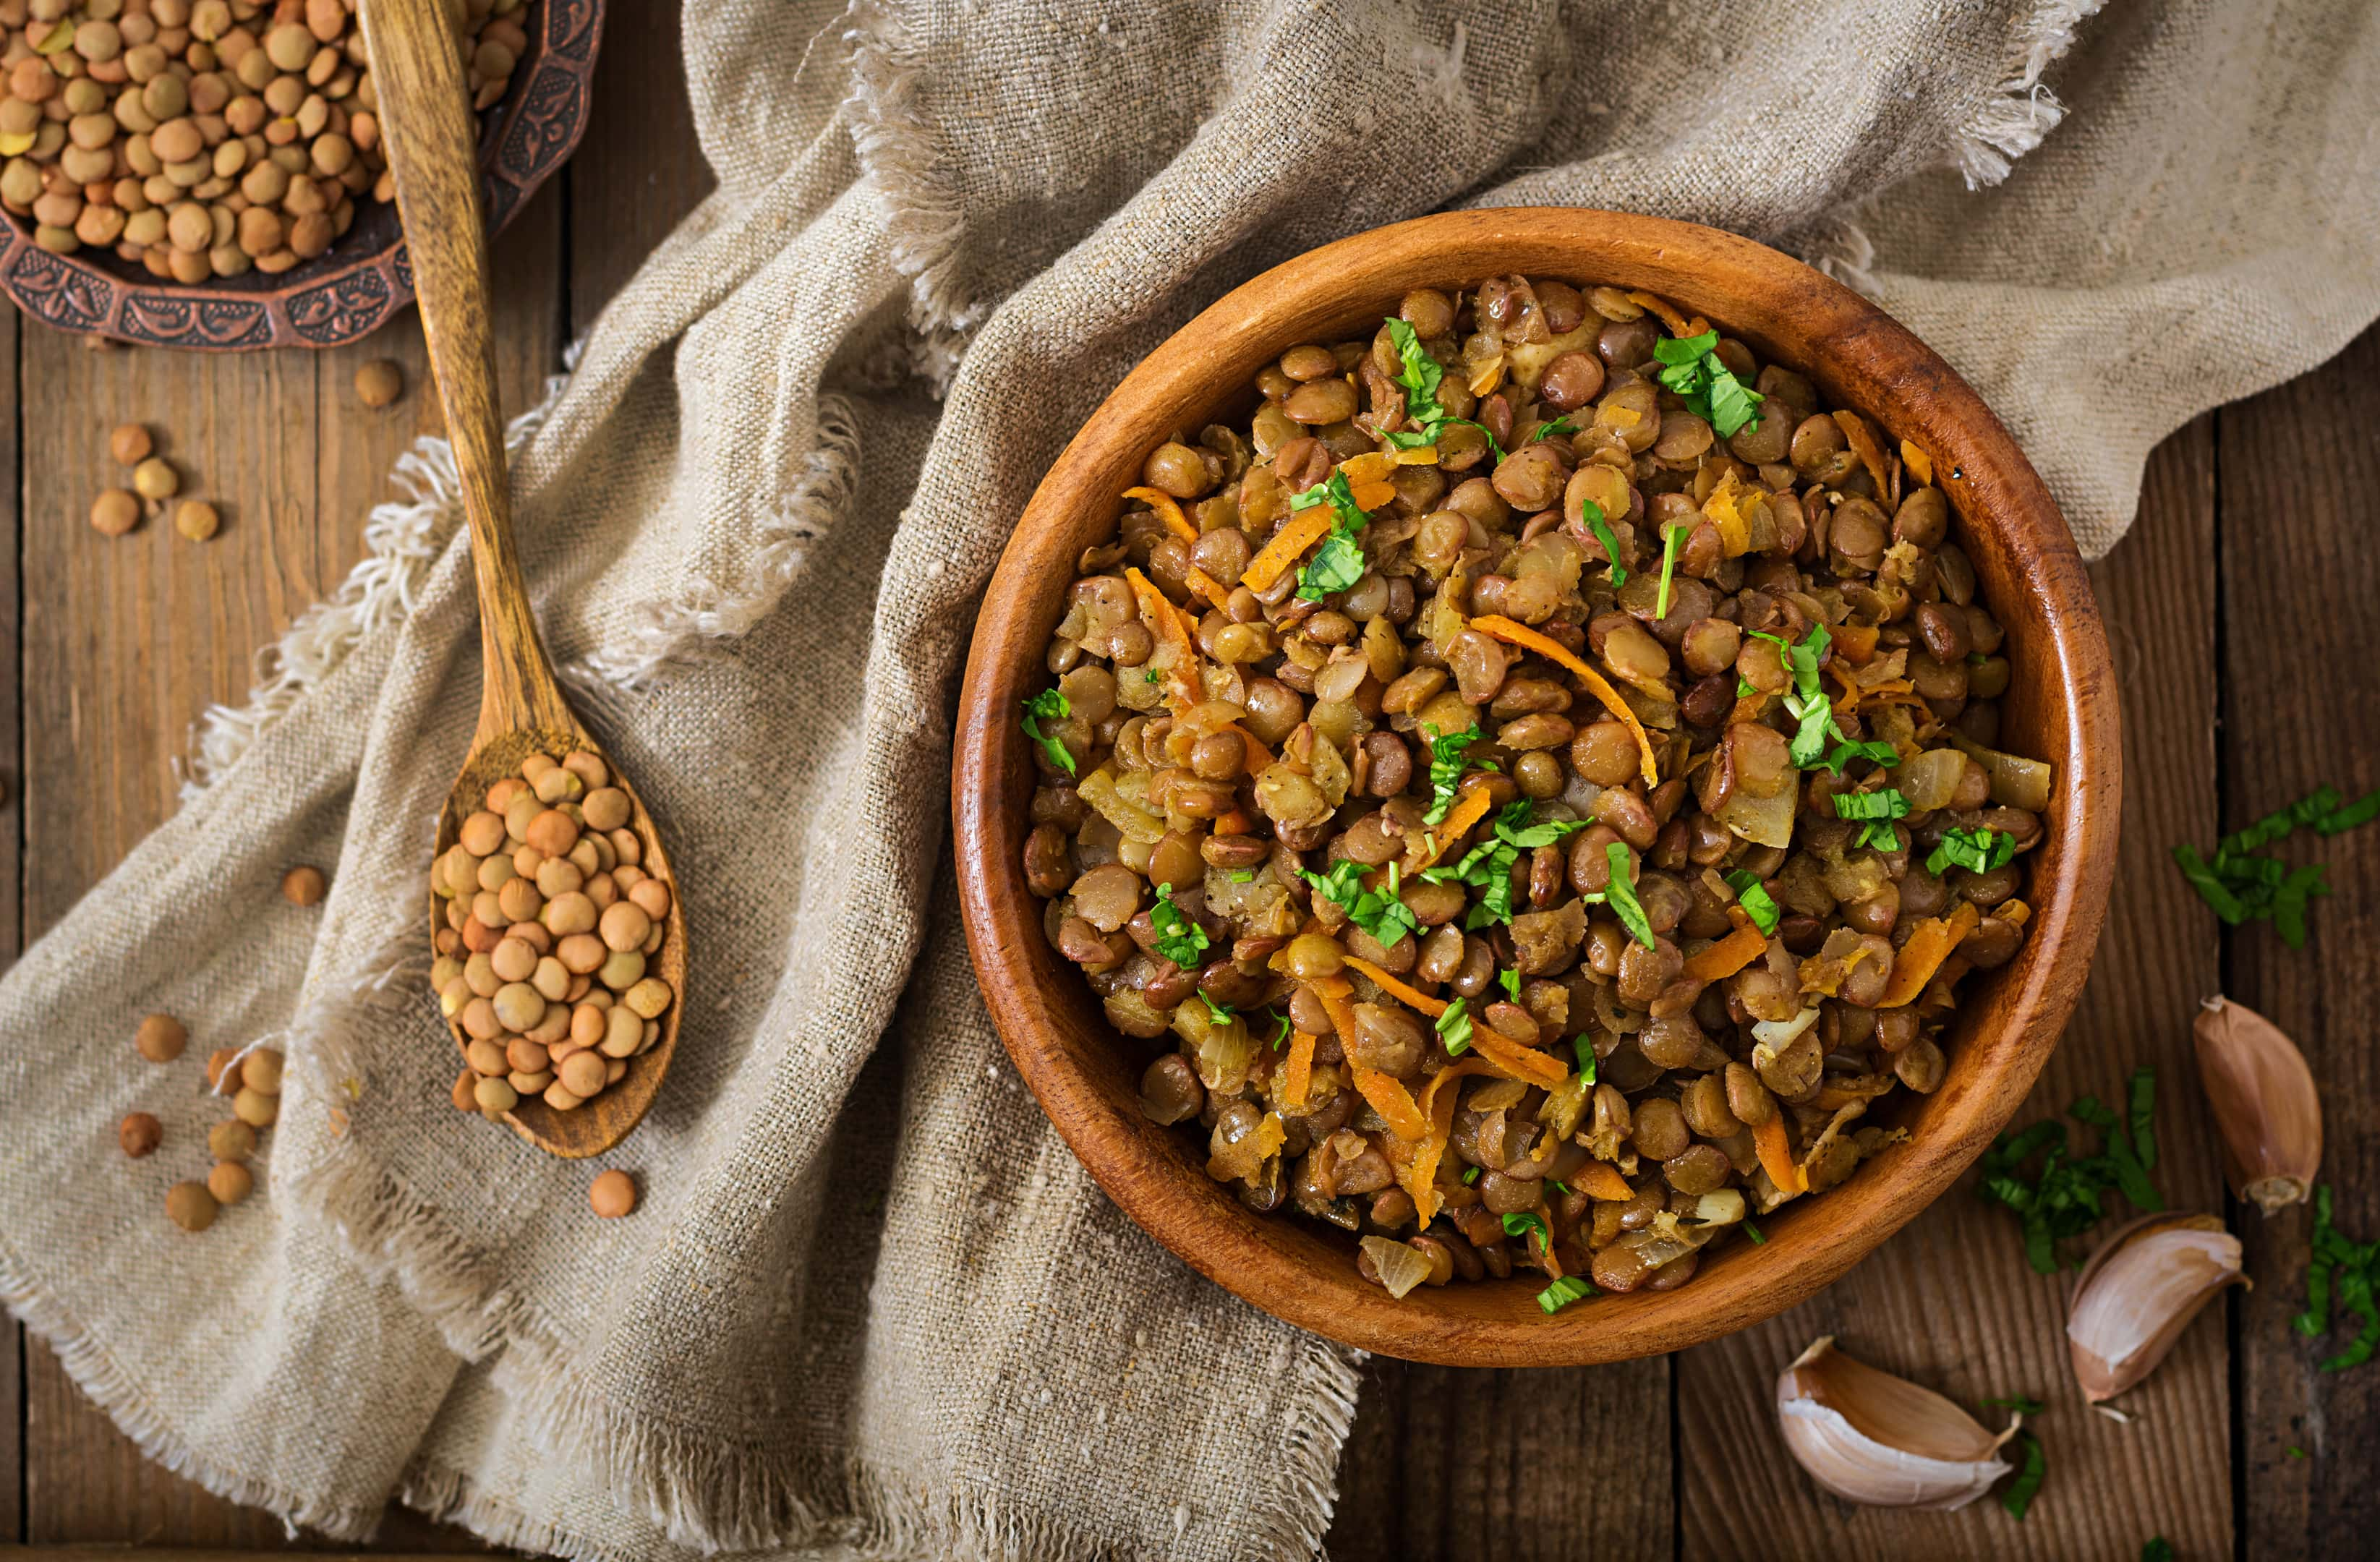 Lentil with carrot and onion in wooden bowl